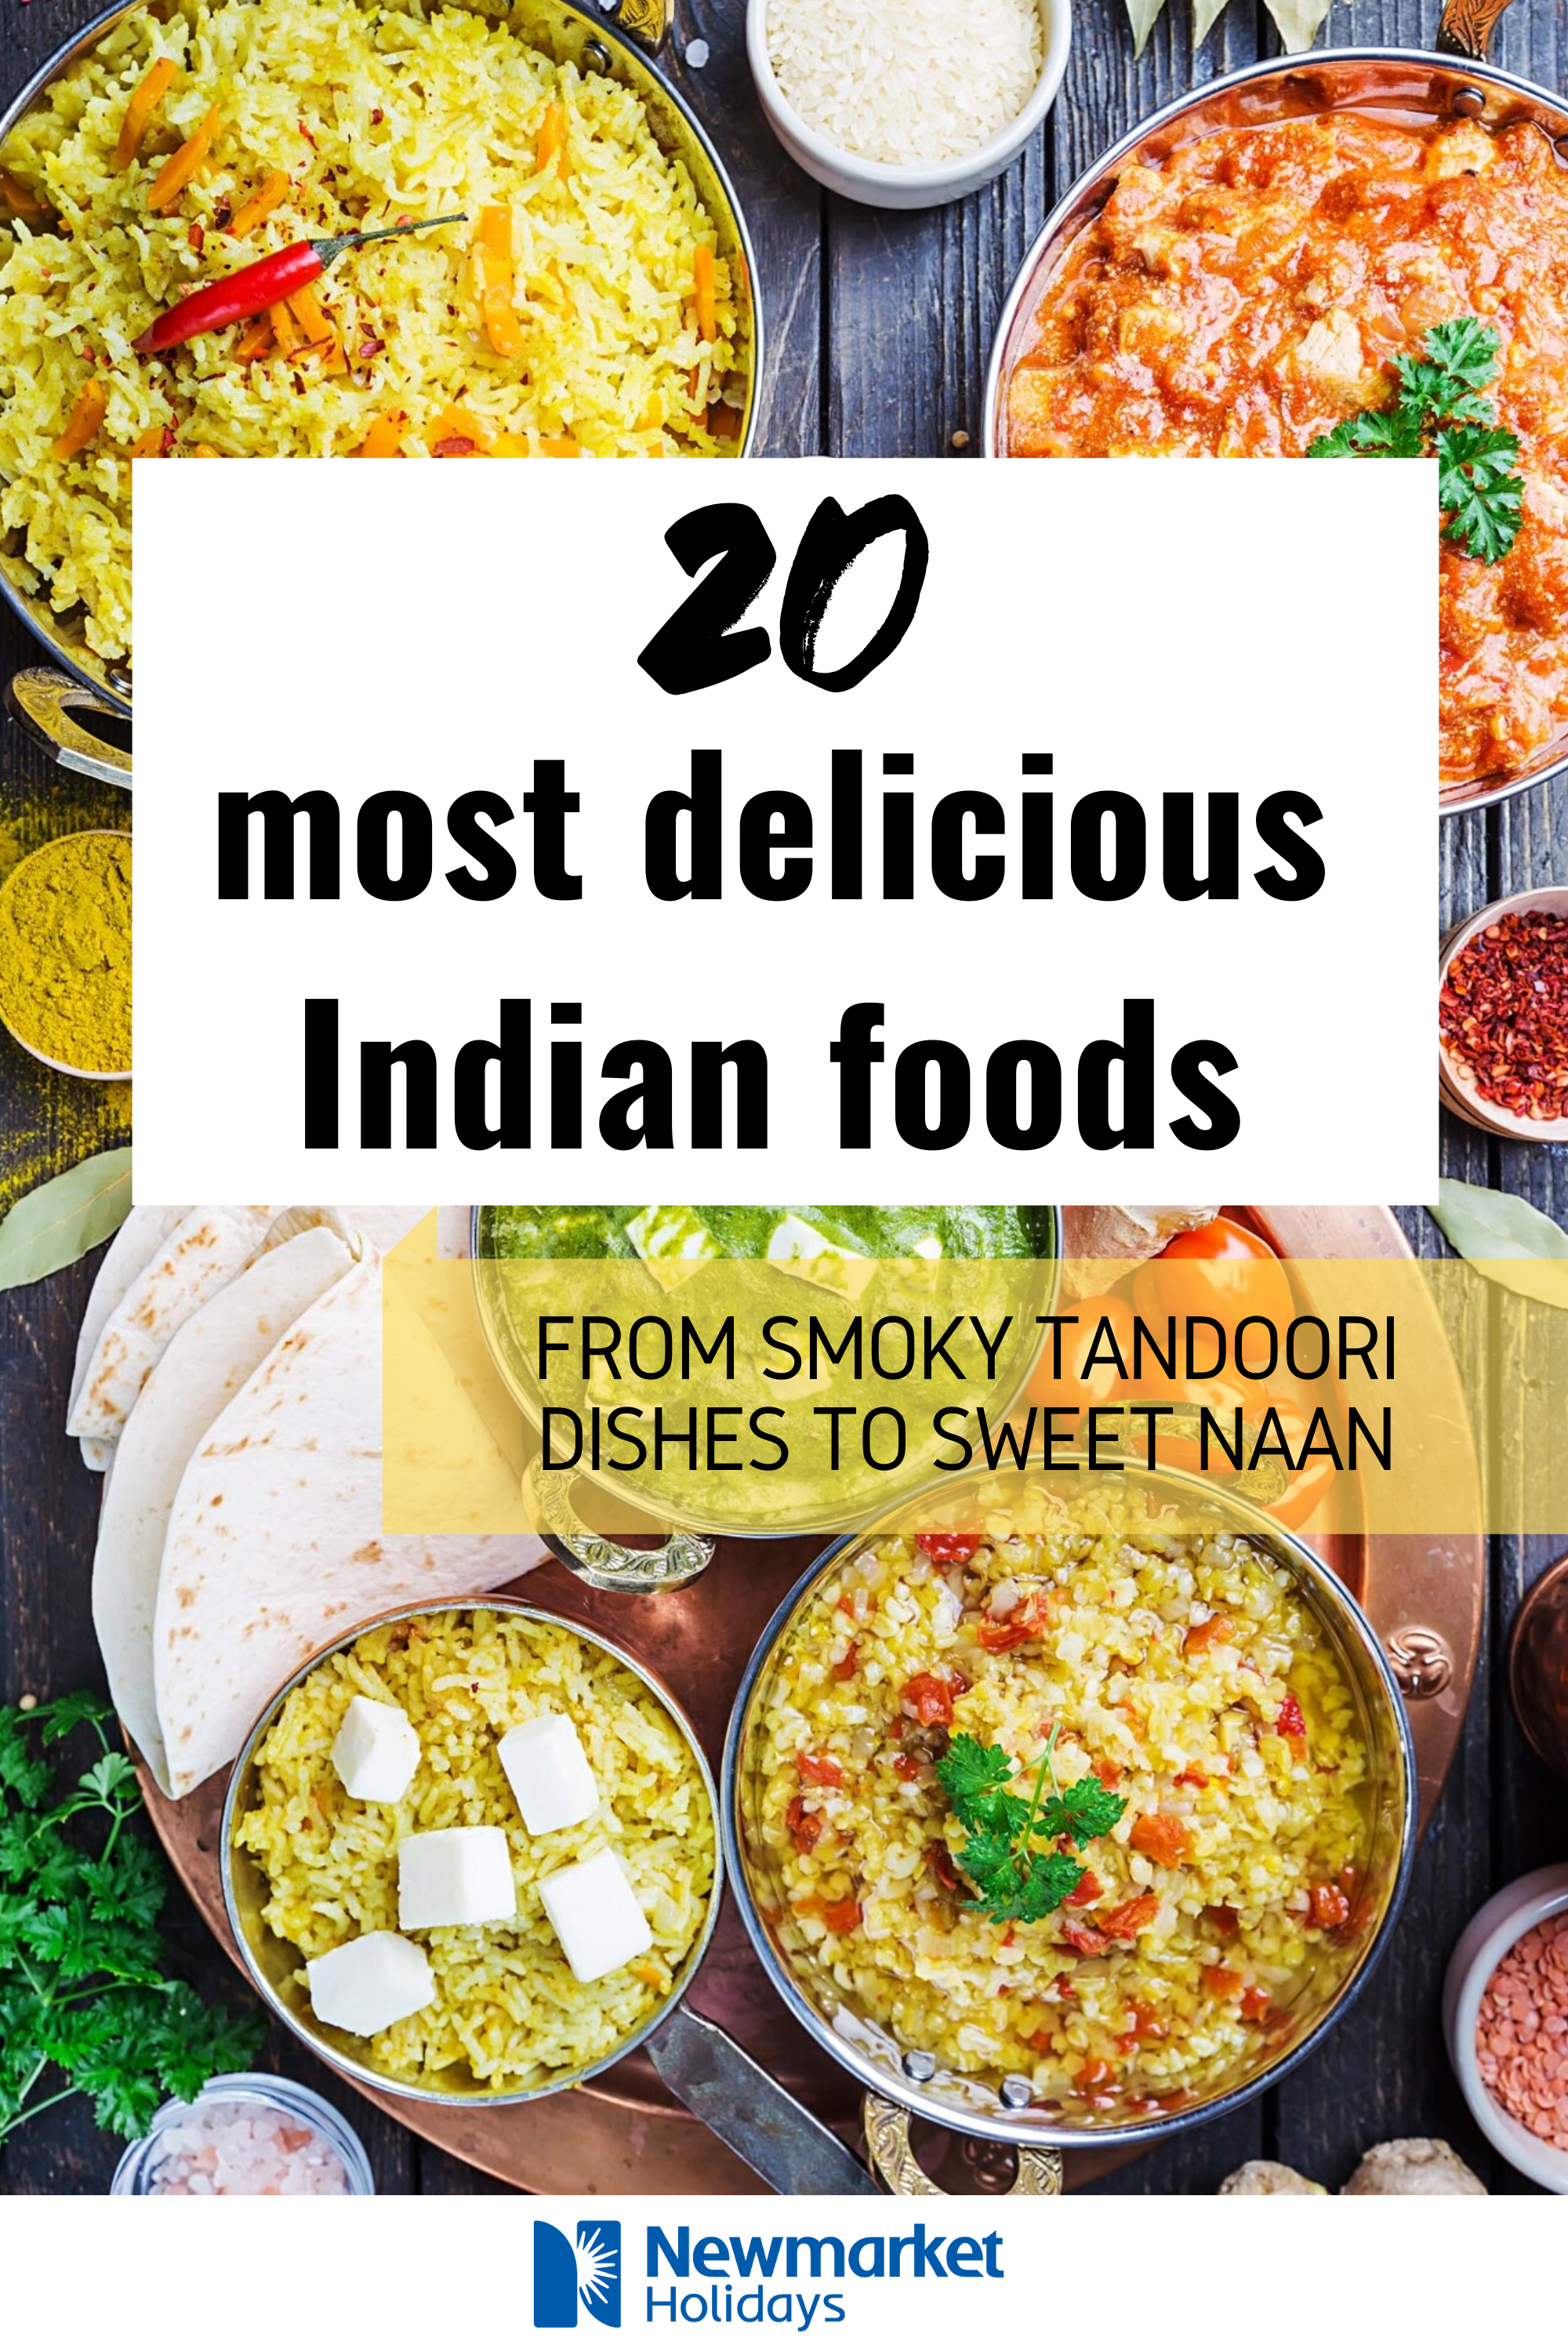 India's 20 tastiest dishes